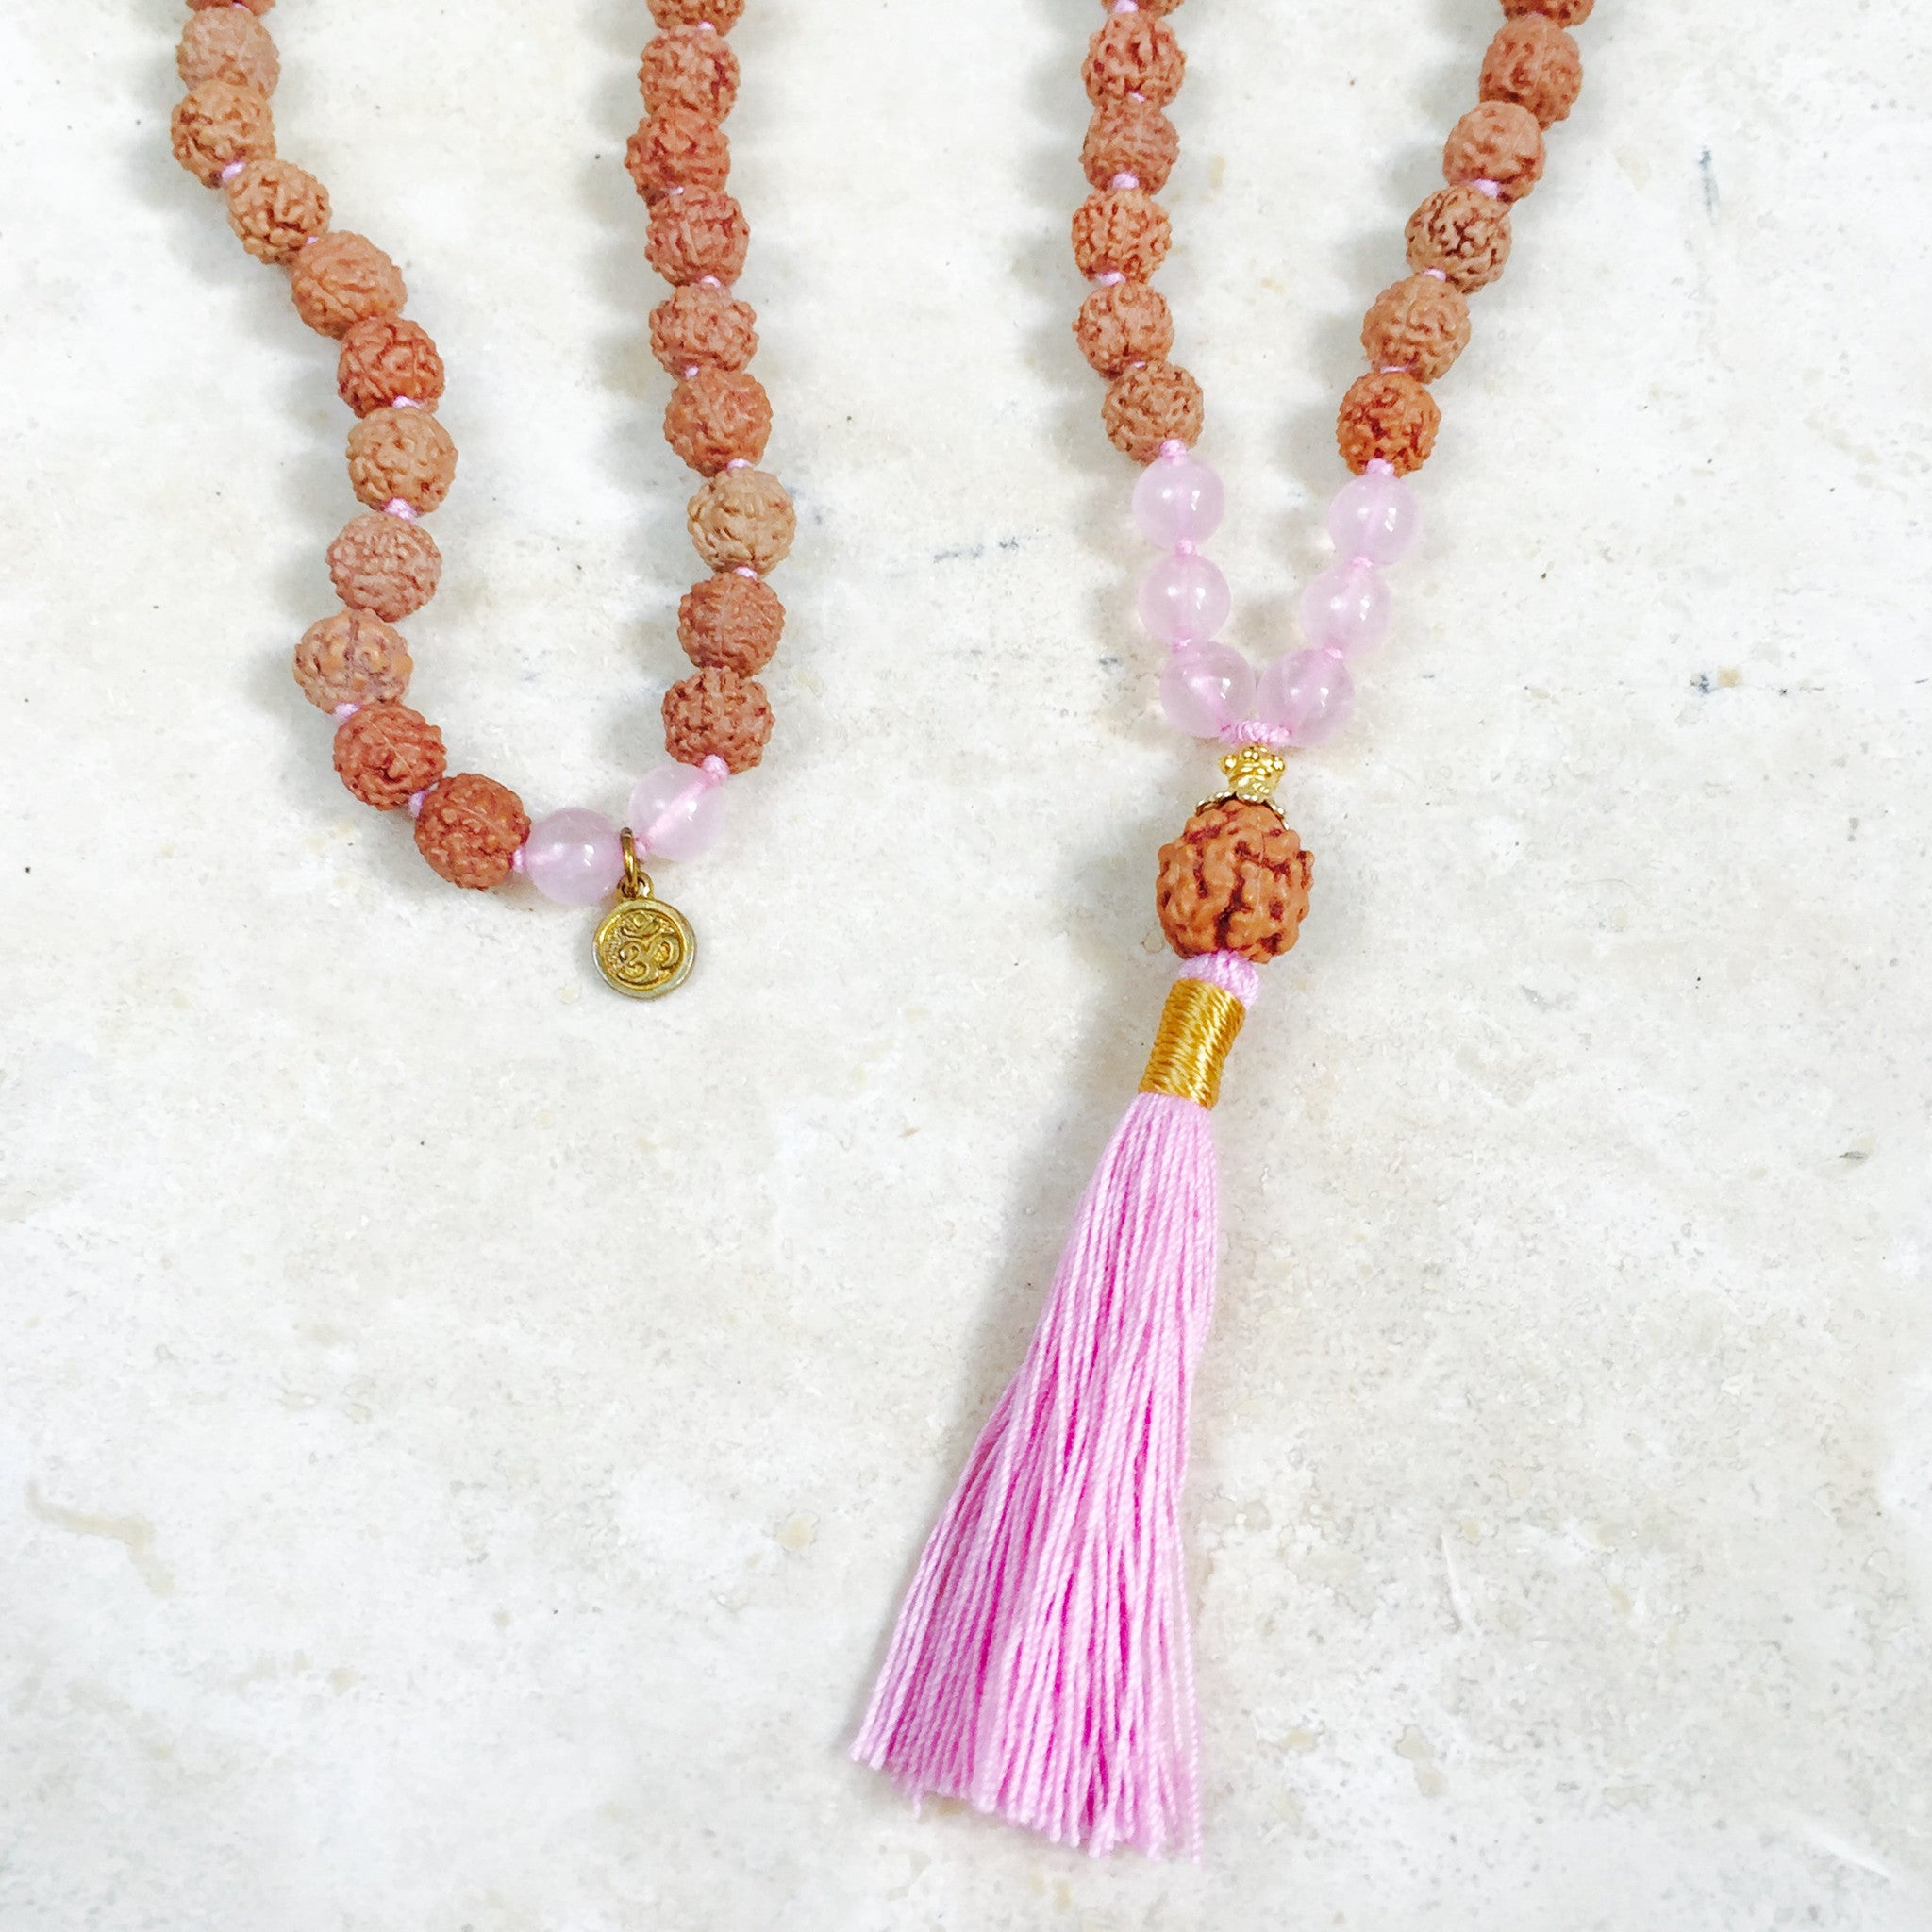 prosperity noelani aloha citrine beads necklace malas mala products hawaii male